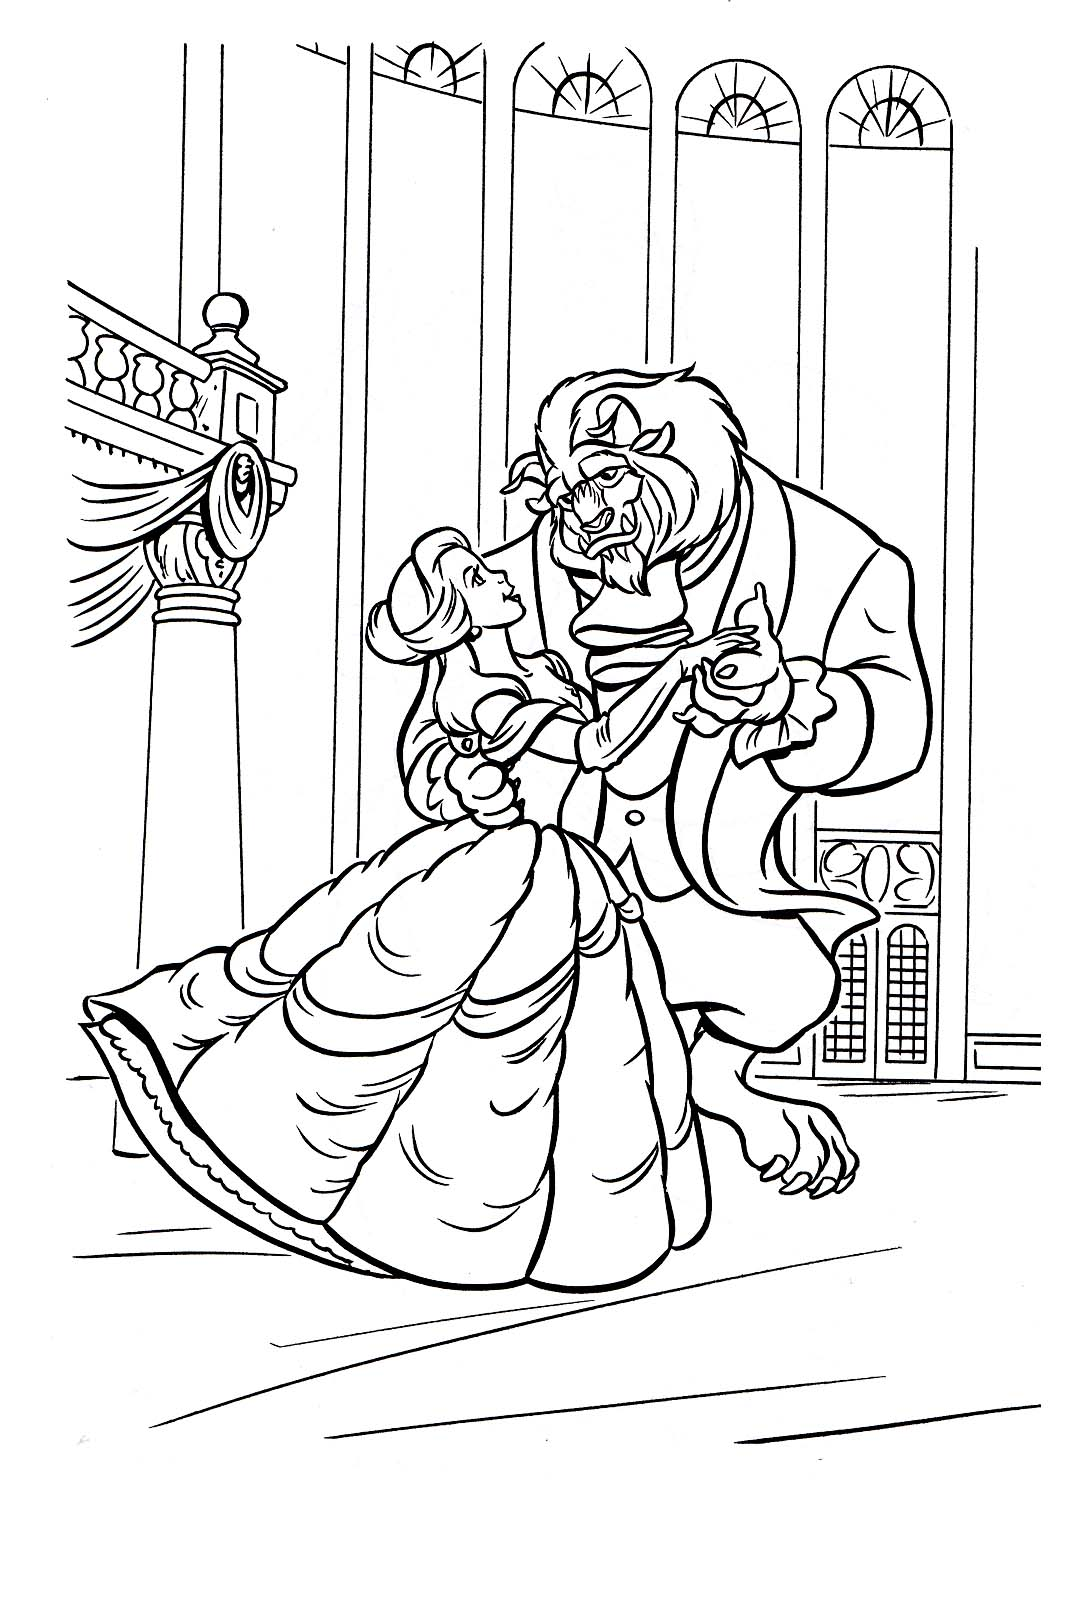 Simple The Beauty And The Beast coloring page to print and color for free